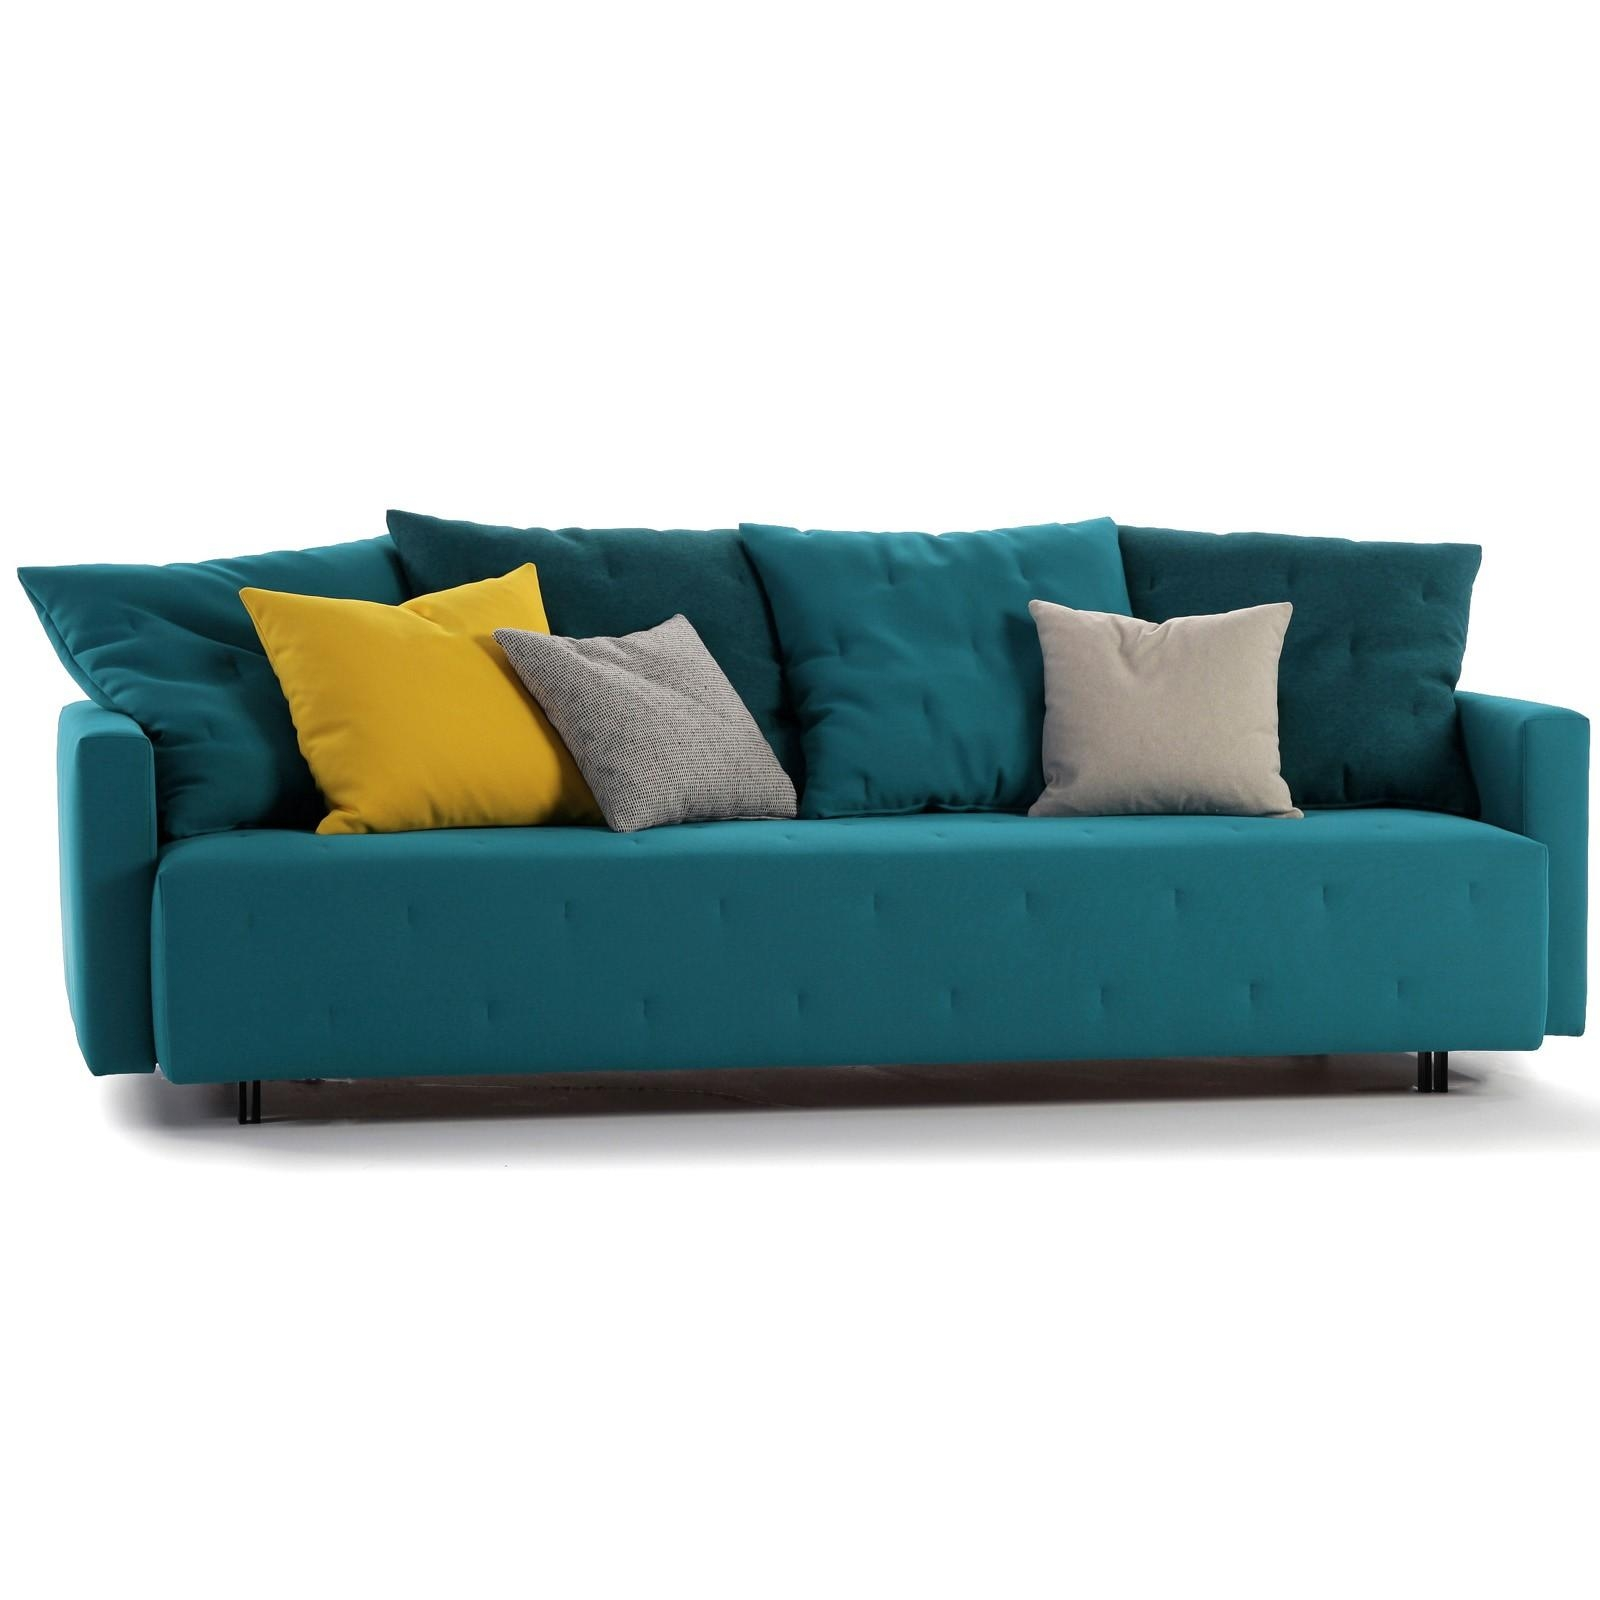 Nap – Ke Zu Furniture | Residential And Contract Furniture Throughout Aqua Sofa Beds (Image 17 of 20)